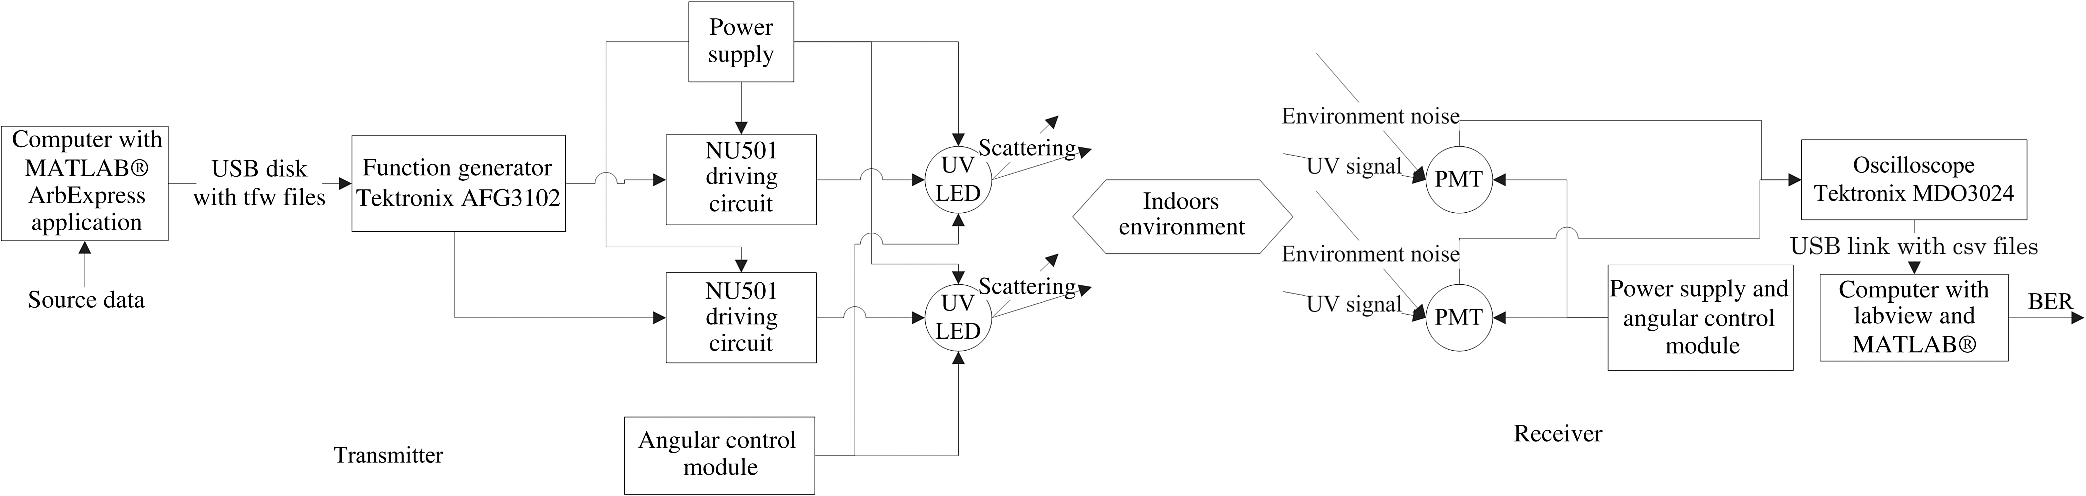 Simulation and experimental research on the Alamouti code